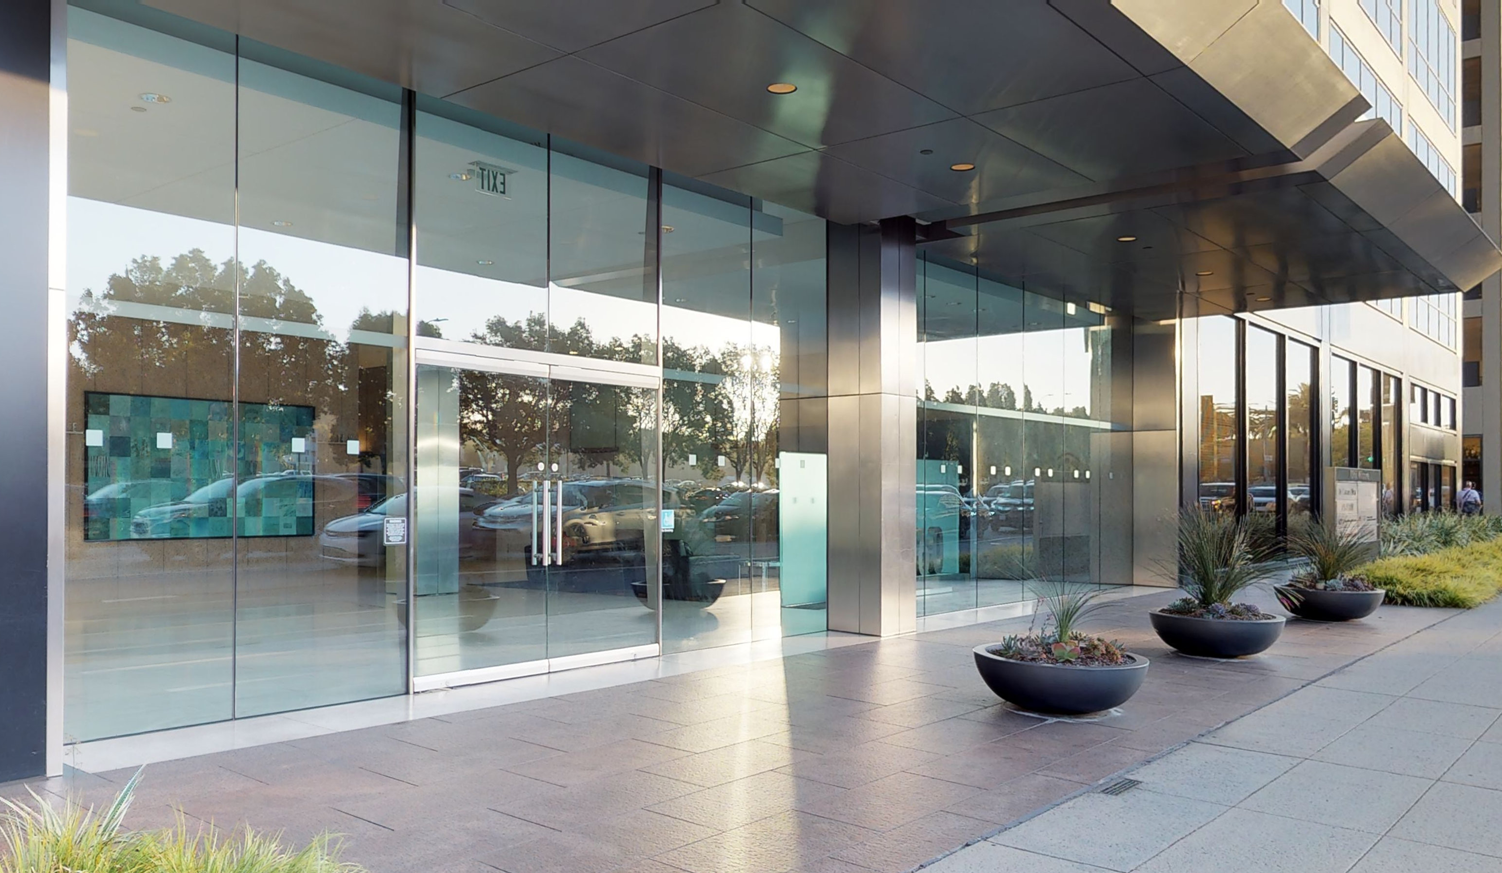 Bank of America financial center with walk-up ATM | 10960 Wilshire Blvd, Los Angeles, CA 90024